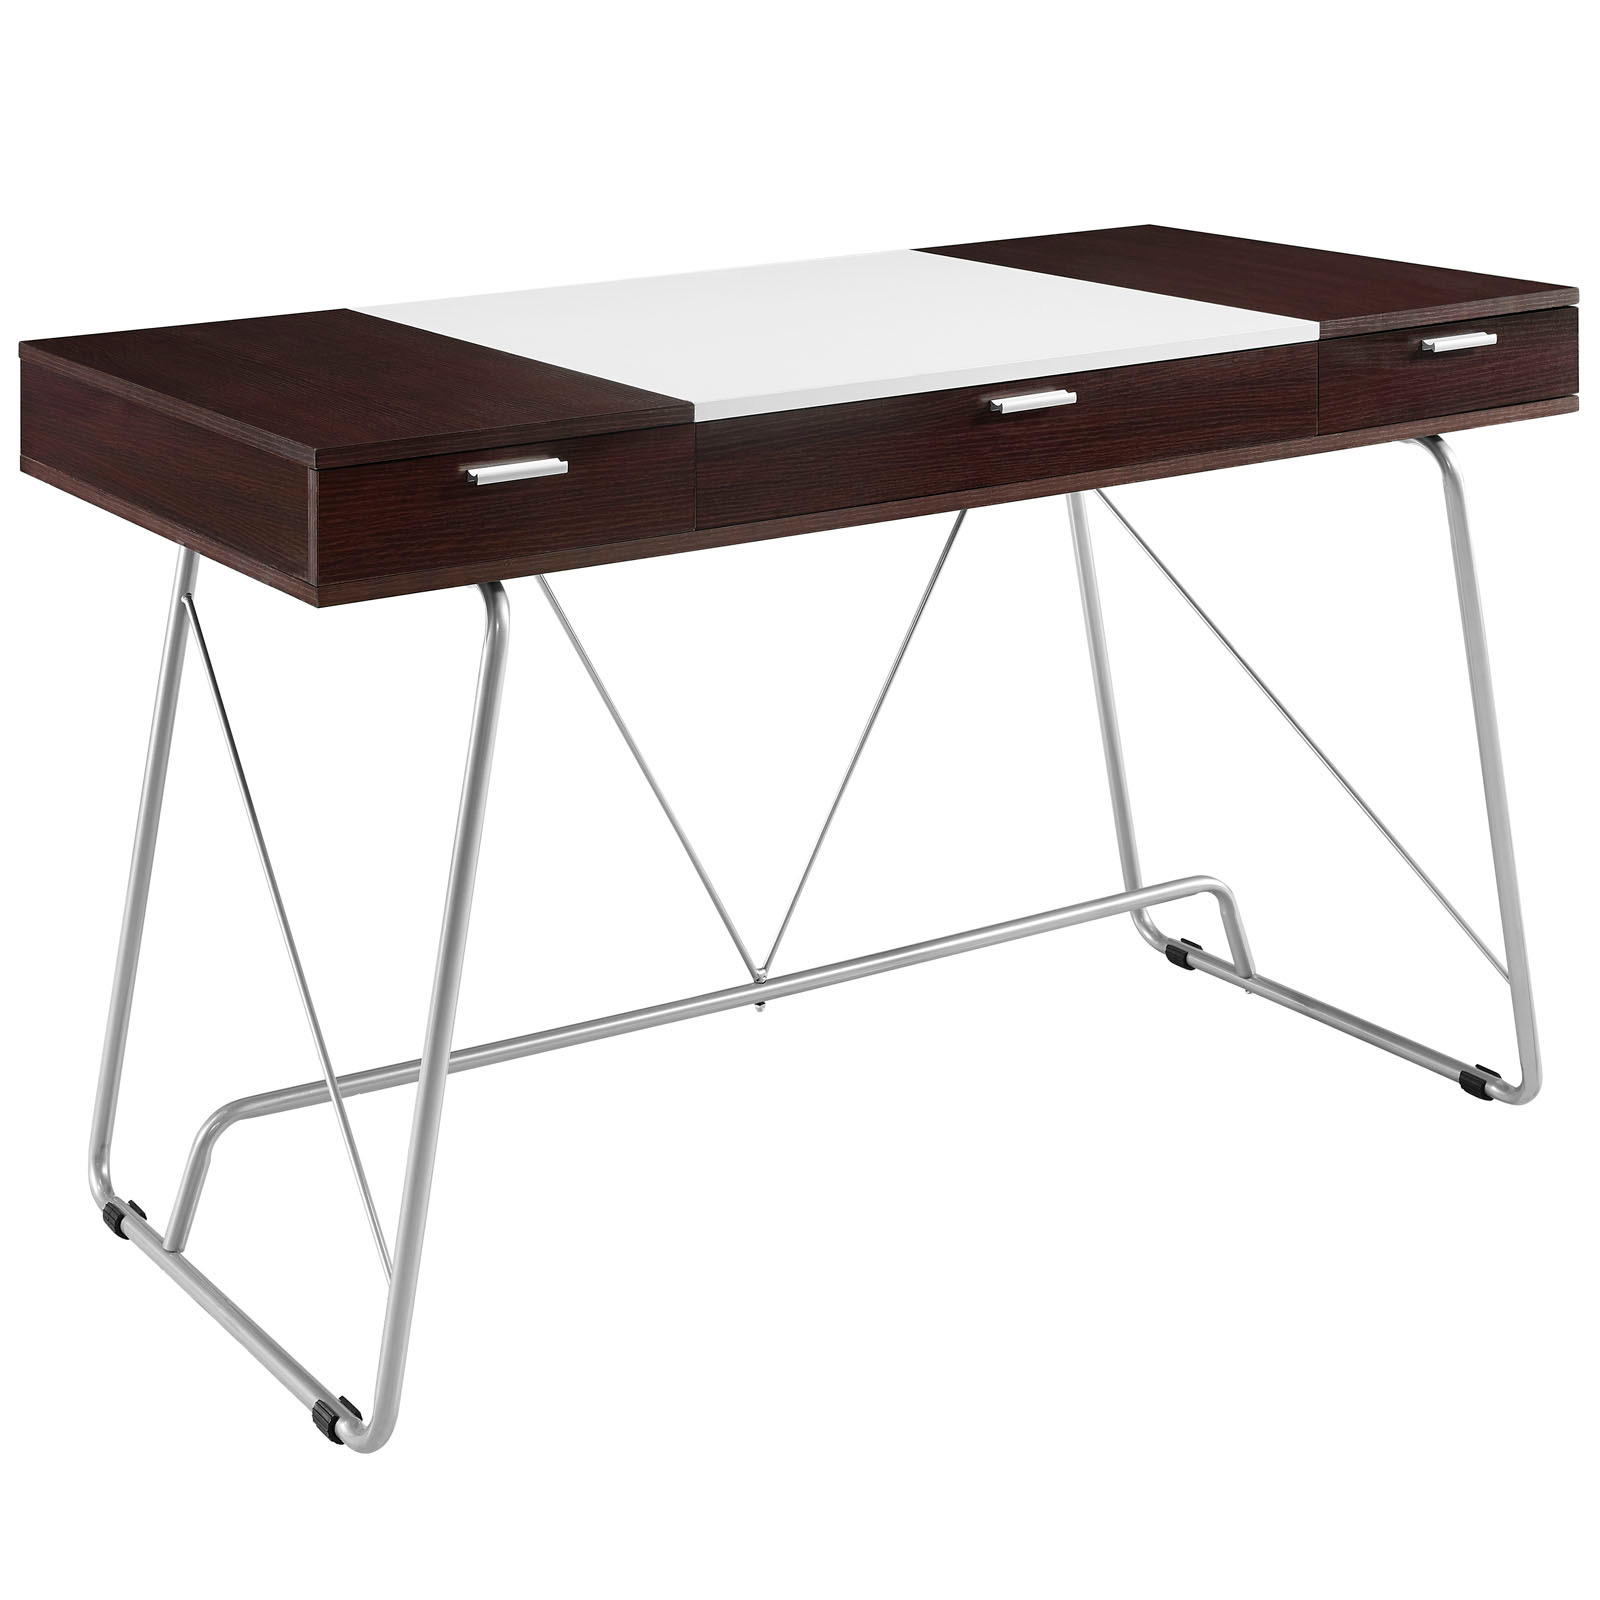 furniture cool office desk. space saving desk from modway shown in cherry brown furniture cool office